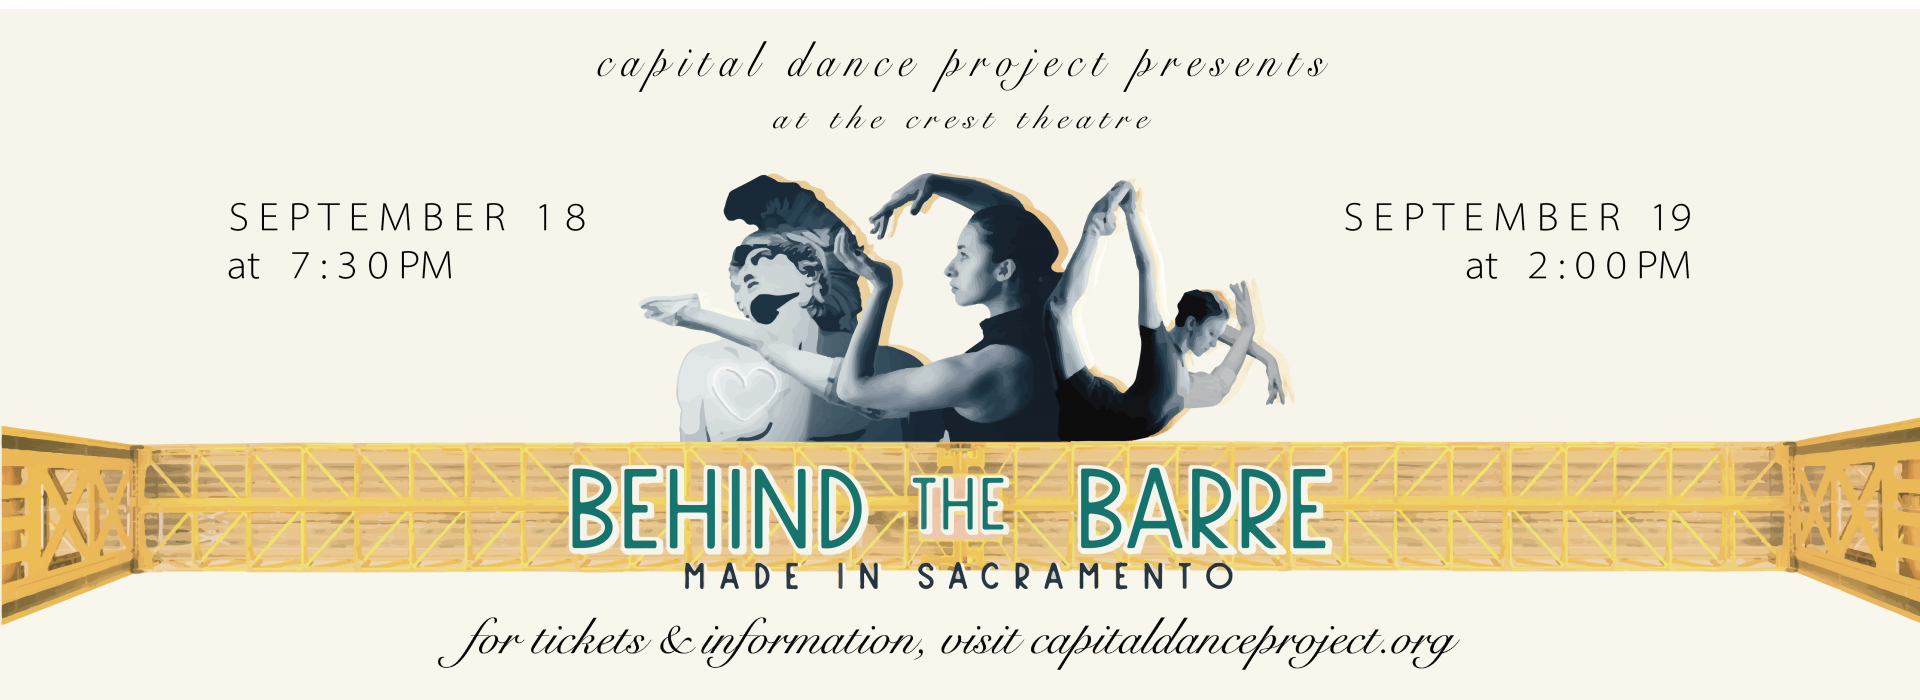 Capital Dance Project: Behind the Barre